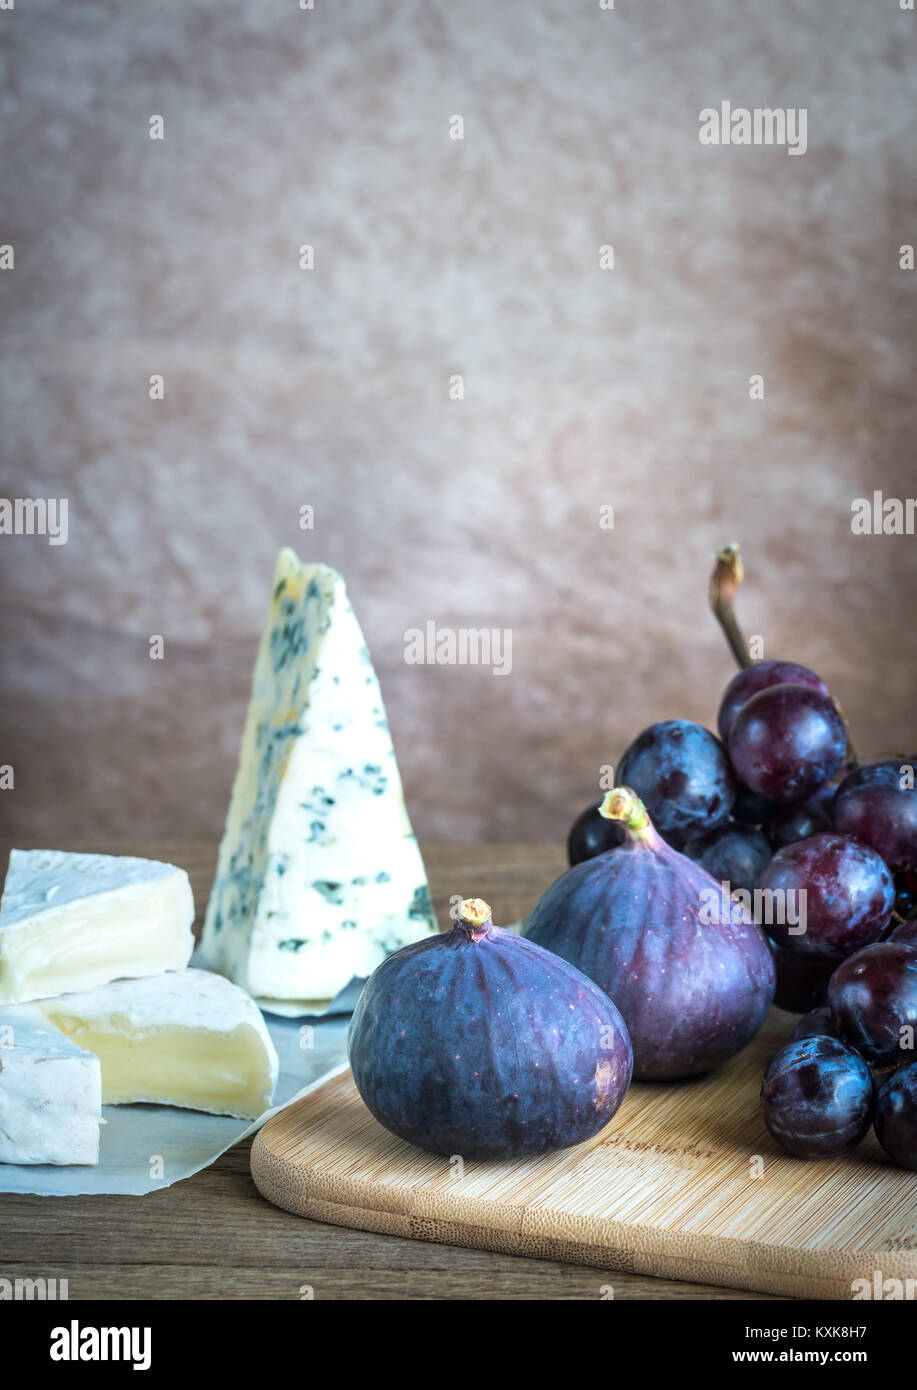 Camembert, figs and grapes - Stock Image